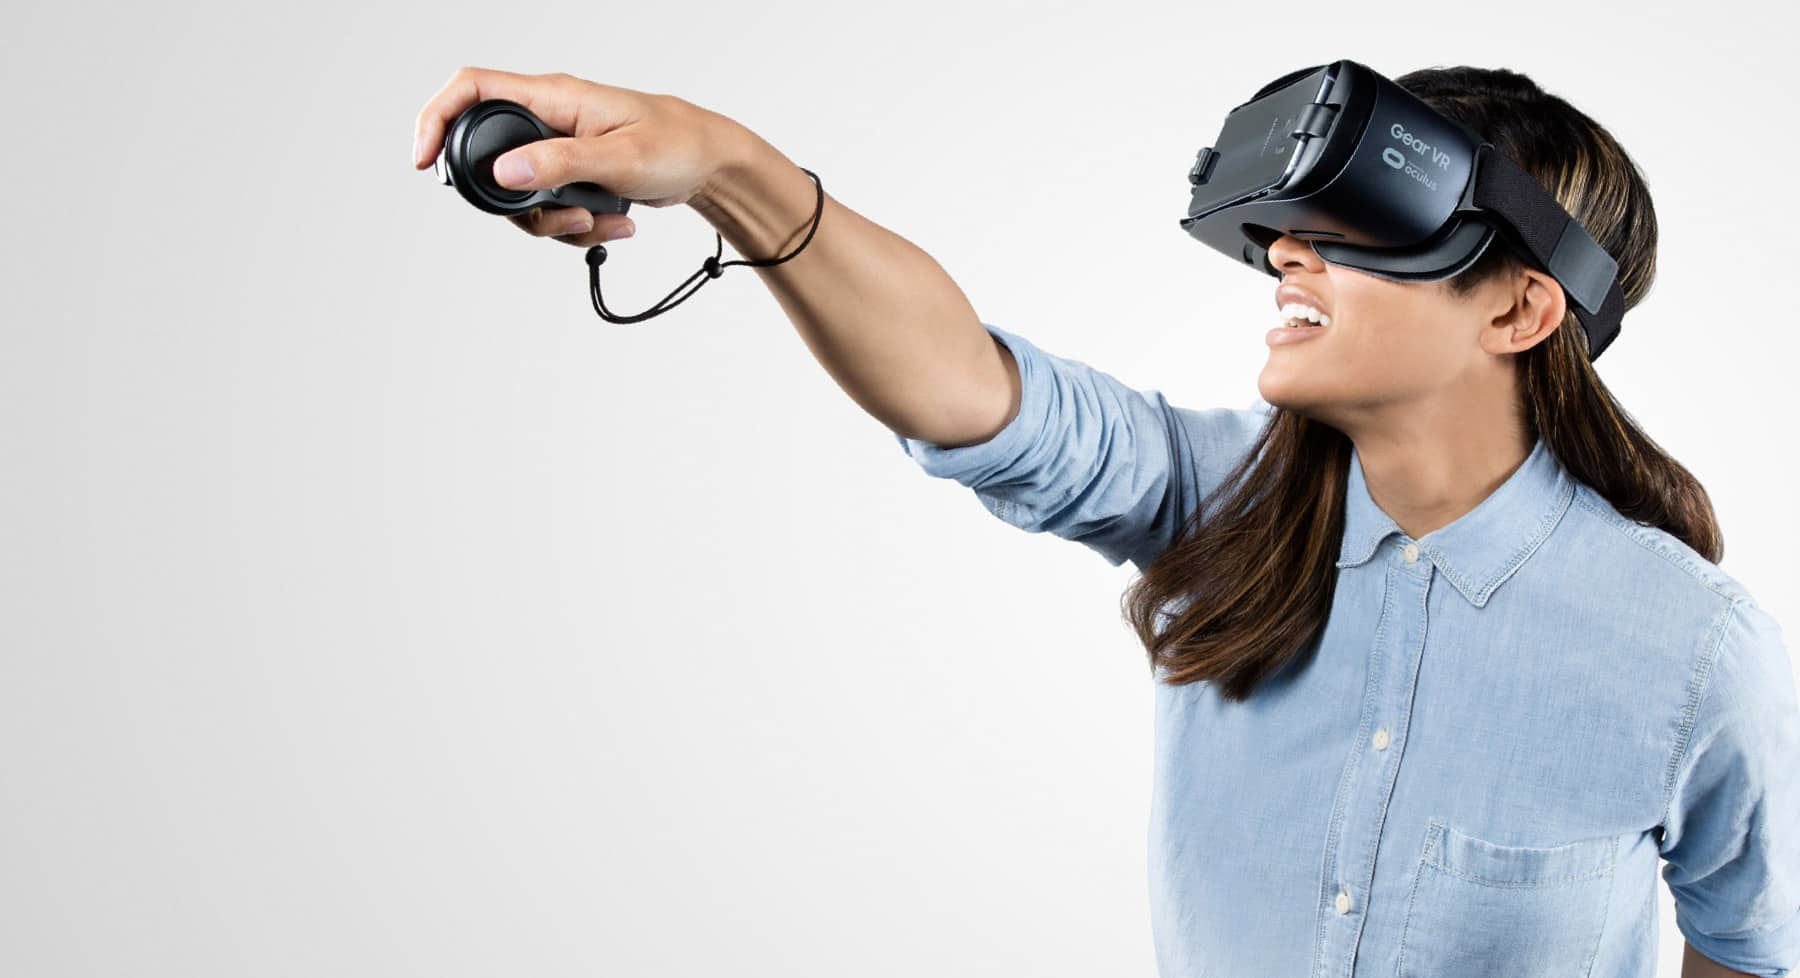 Does Samsung Gear VR have a future?